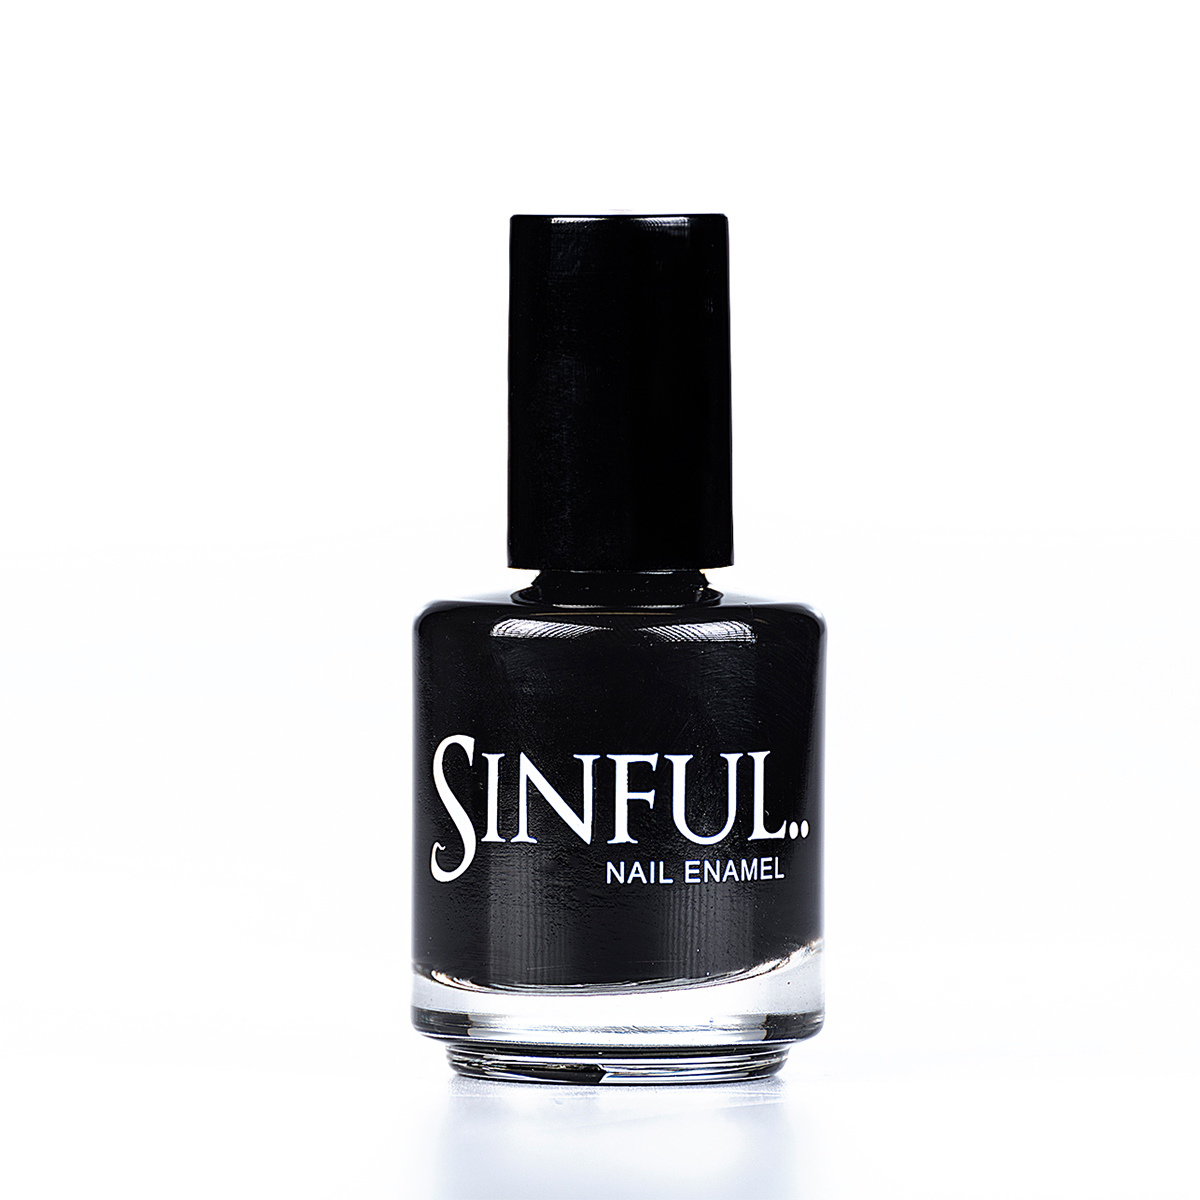 The darkest of the dark, a solid high gloss black. Sinful always recommends applying two coats of polish to give a solid colour, then applying top coat to extend the wear-time of the polish.